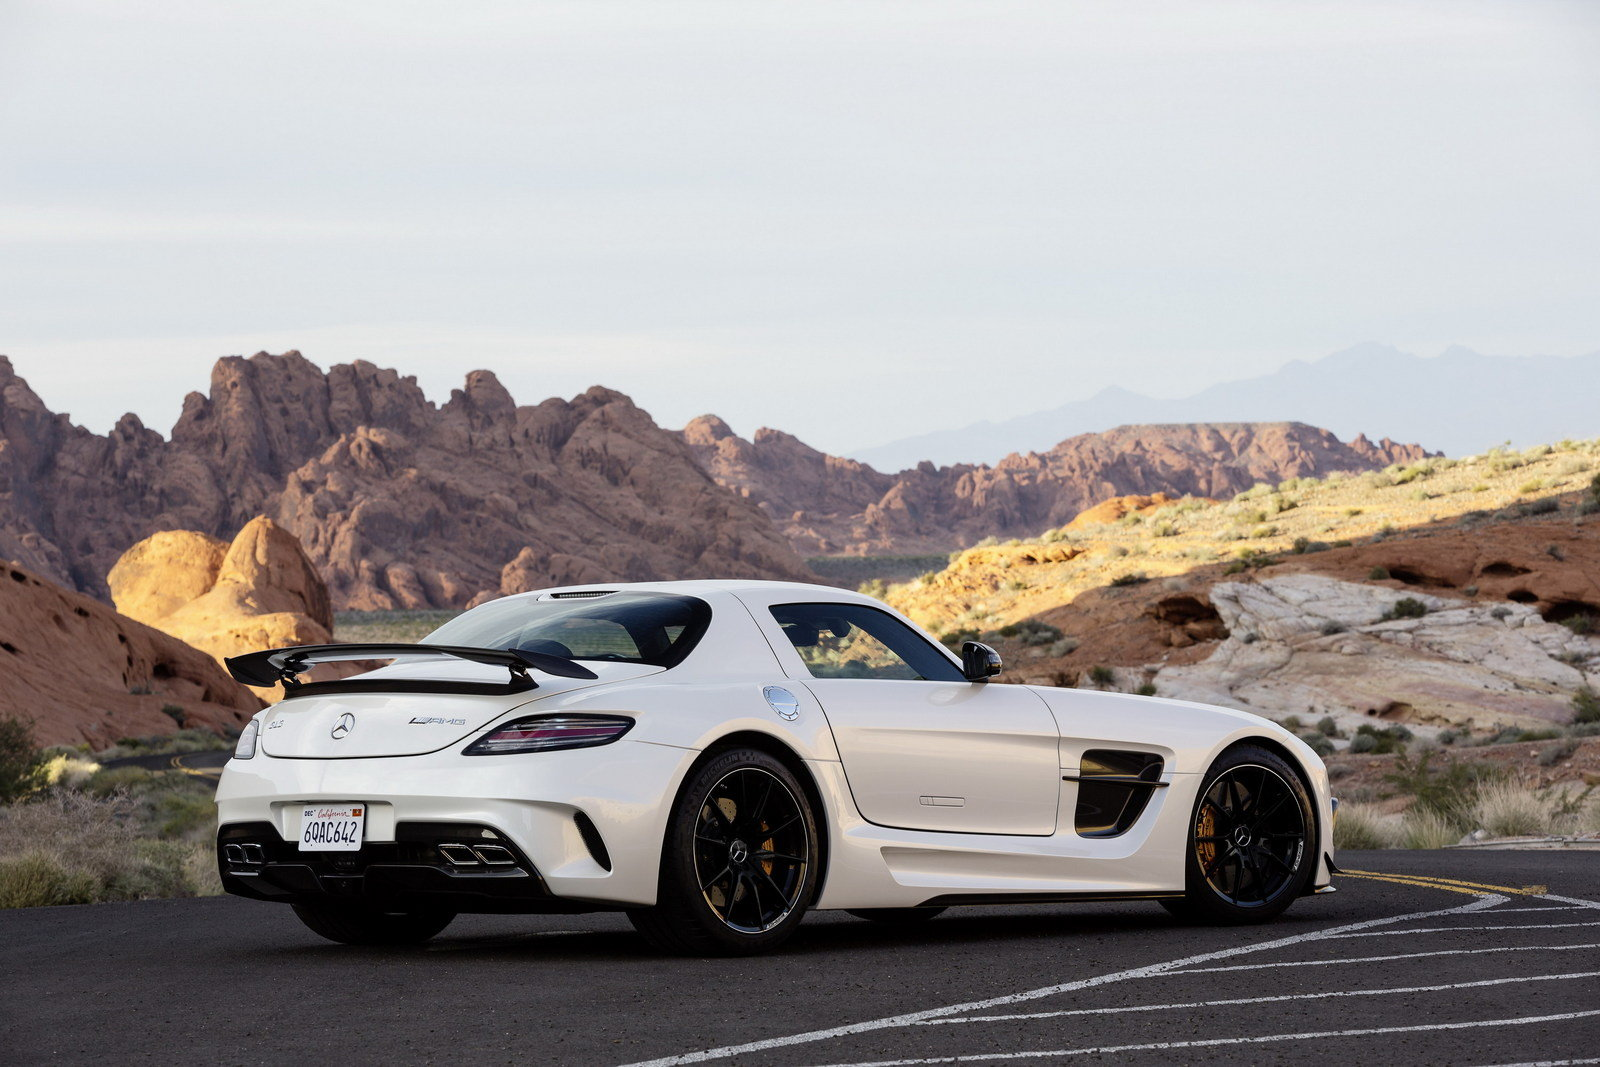 http://pictures.topspeed.com/IMG/crop/201211/2014-mercedes-sls-amg-bla-20_1600x0w.jpg